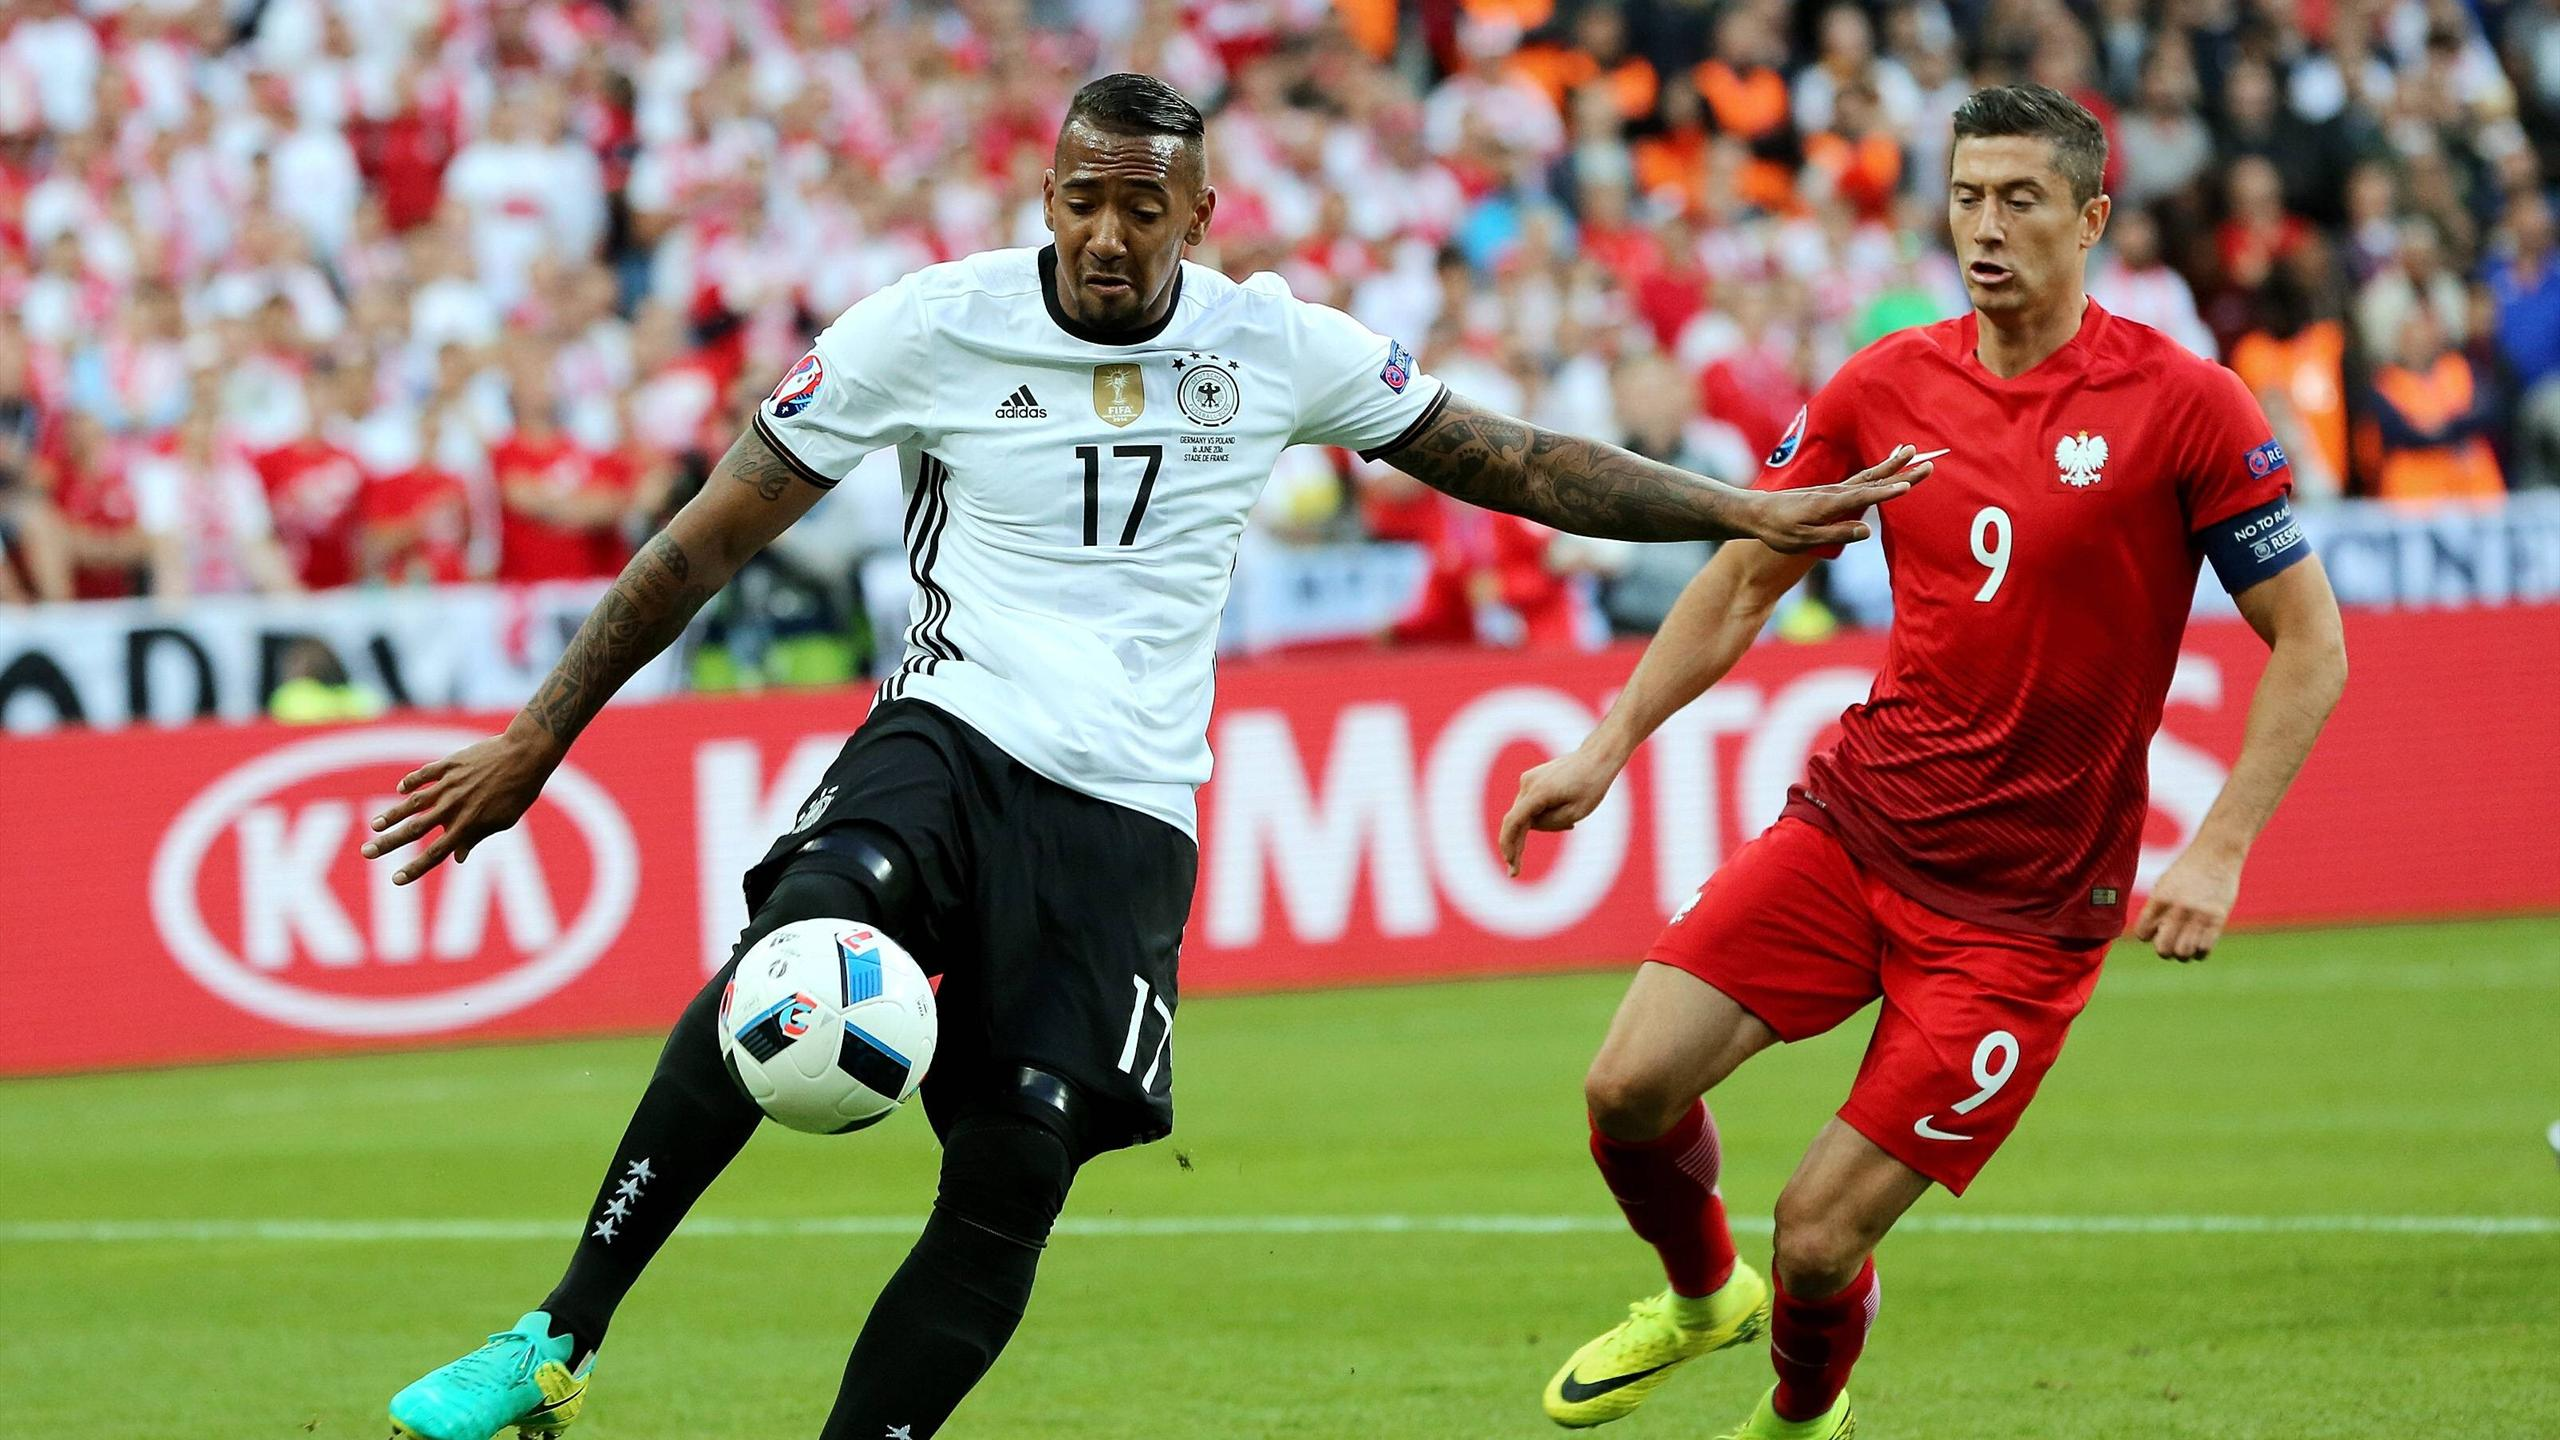 Germany defender Jerome Boateng in a duel with Robert Lewandowski from Poland